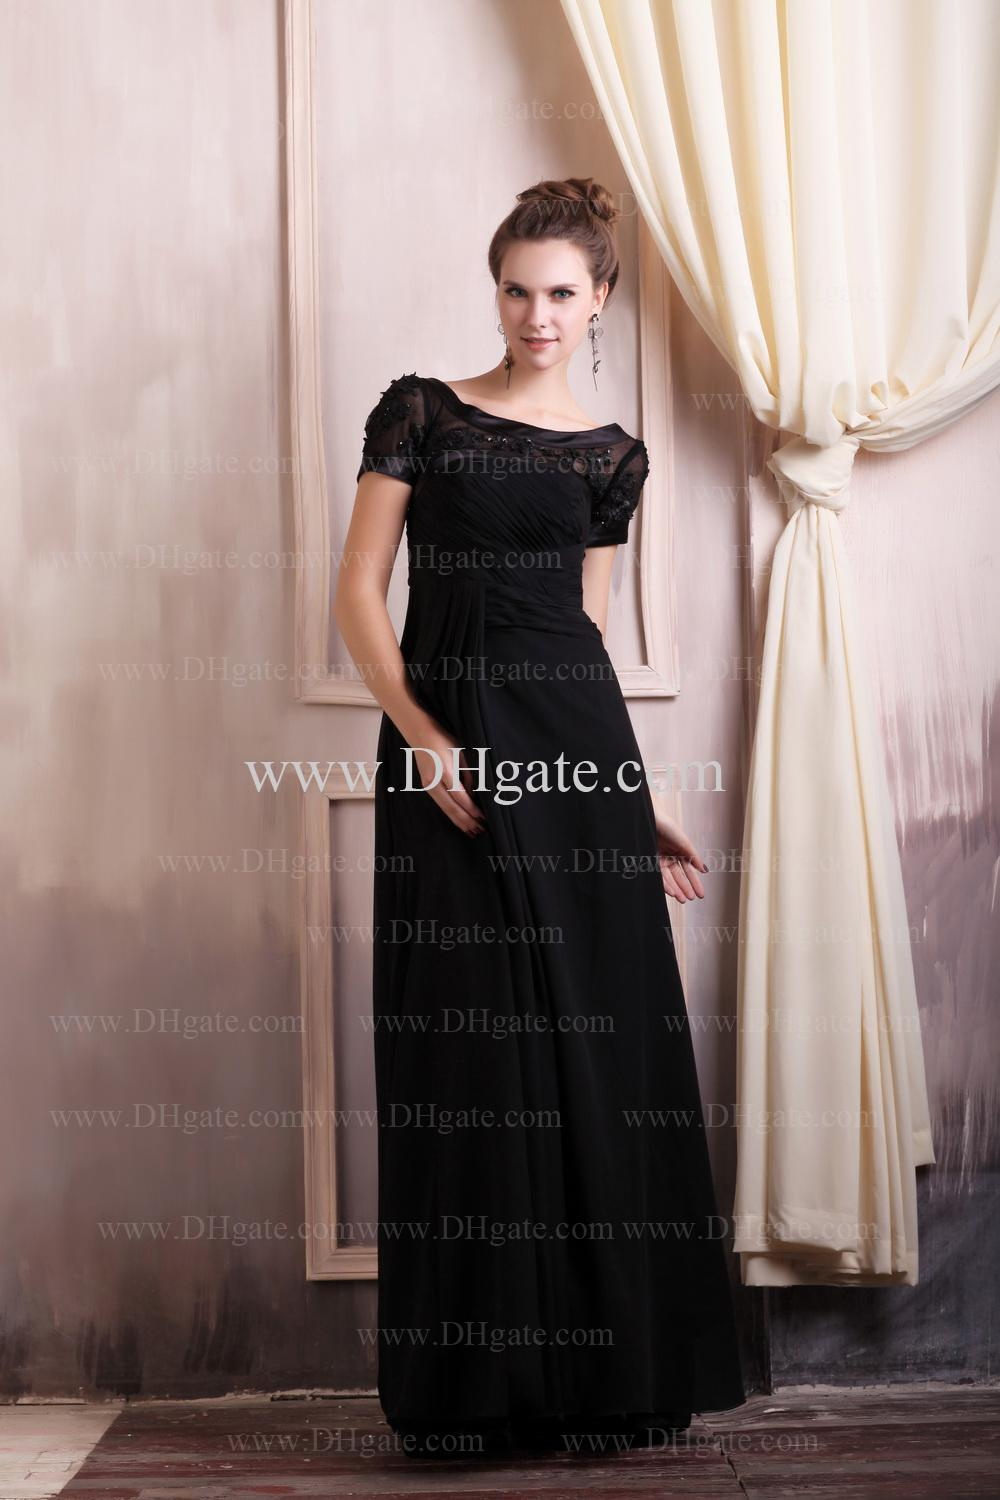 High Quality 2013 Sexy Black Short Sleeves Applique Beads Floor Length Mother of the Bride DressesClear Crystals Bridal Bracelets for free